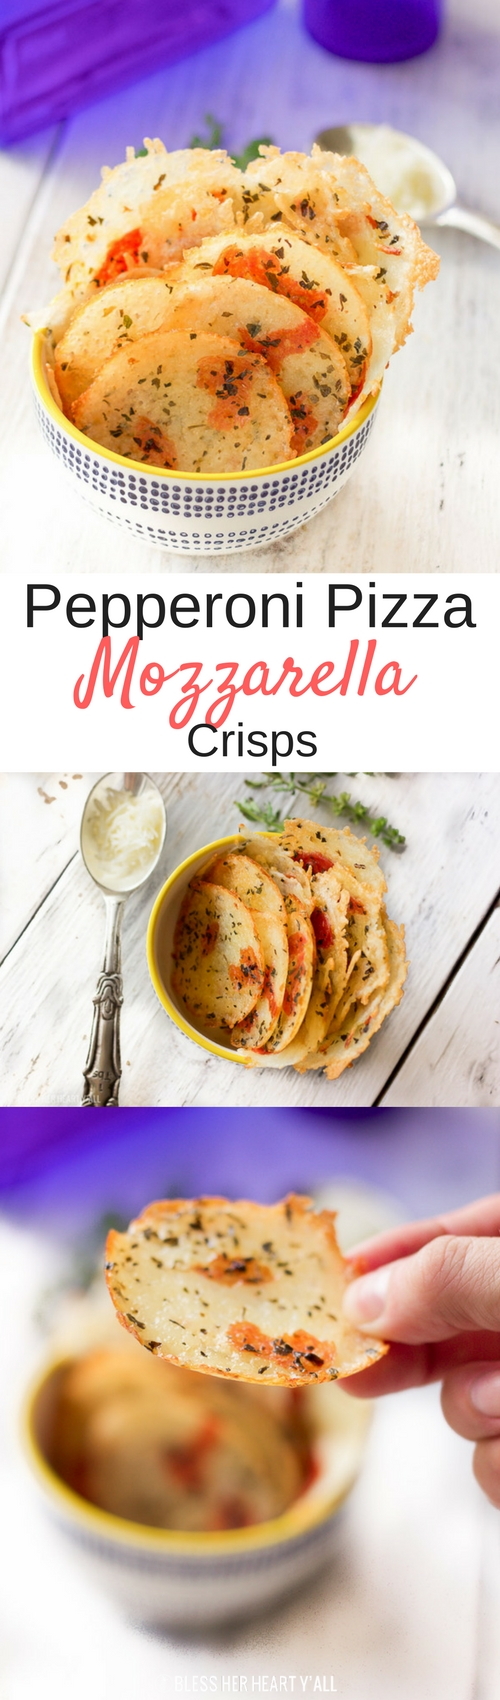 These pepperoni pizza mozzarella crisps are the perfect little dippable appetizer or snack. Shredded mozzarella cheese is quickly baked with pepperoni pieces, garlic, and basil into crispy addictive bites that are easily dunkable into your favorite marinara sauce!